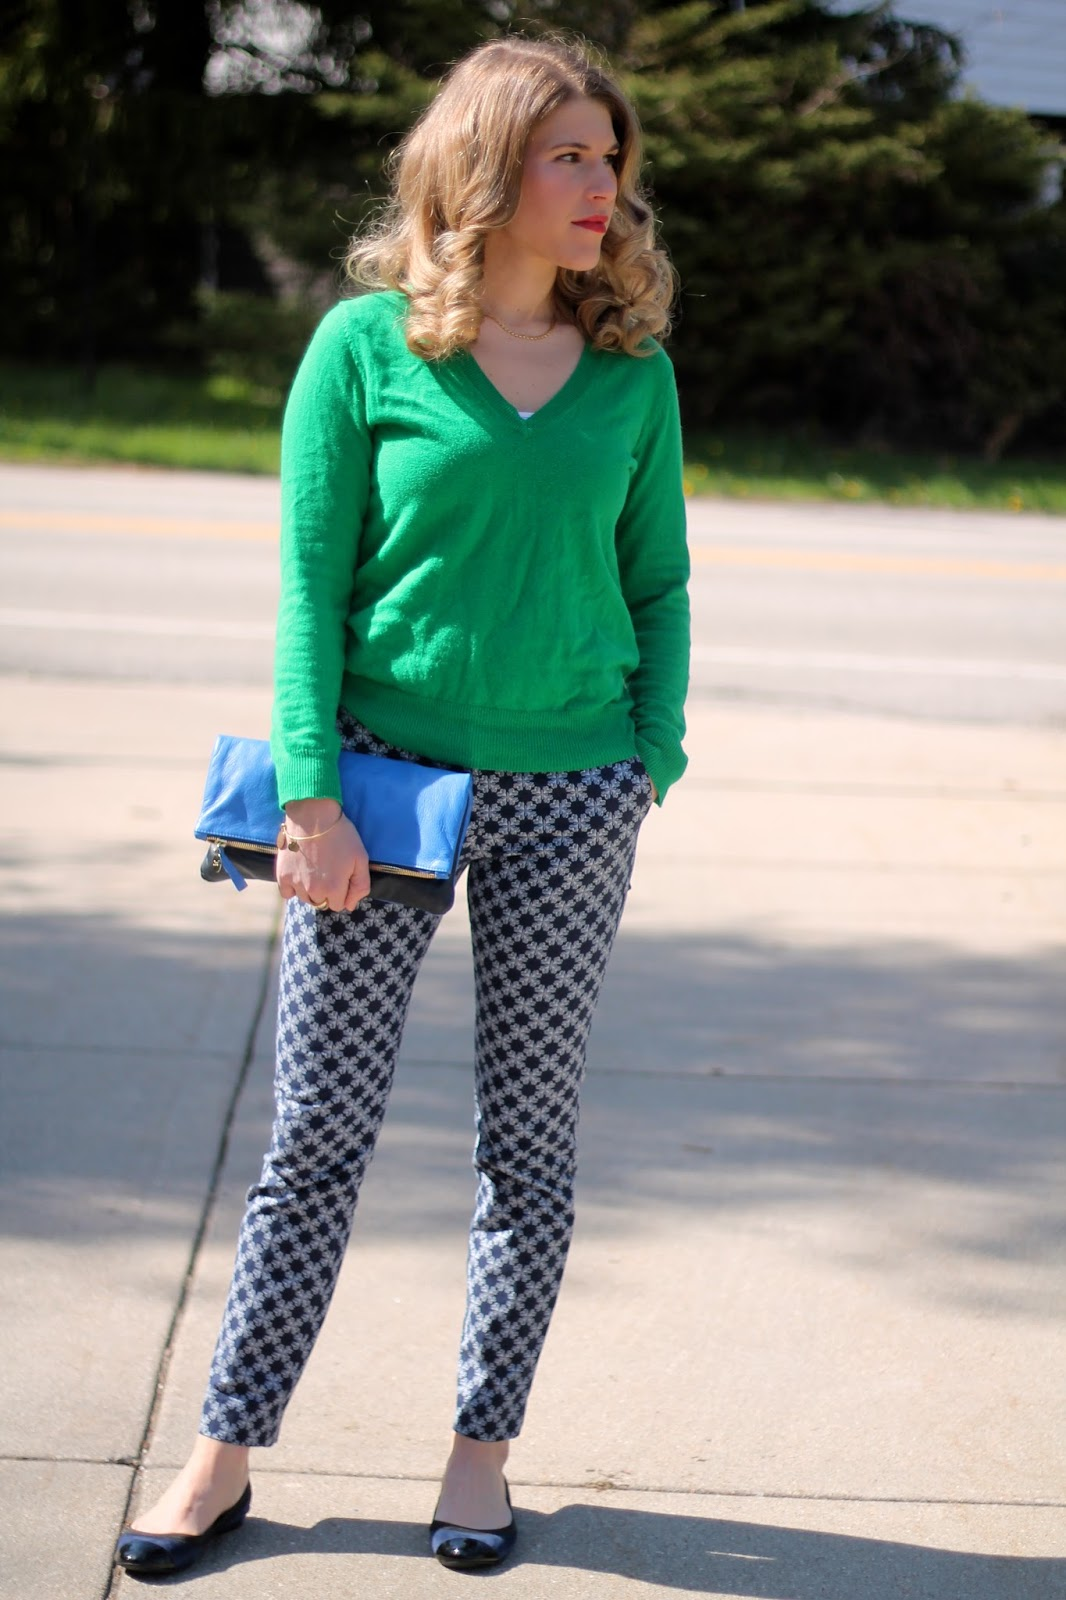 18ab1b3d64 I do deClaire  Work Outfit with Printed Pants